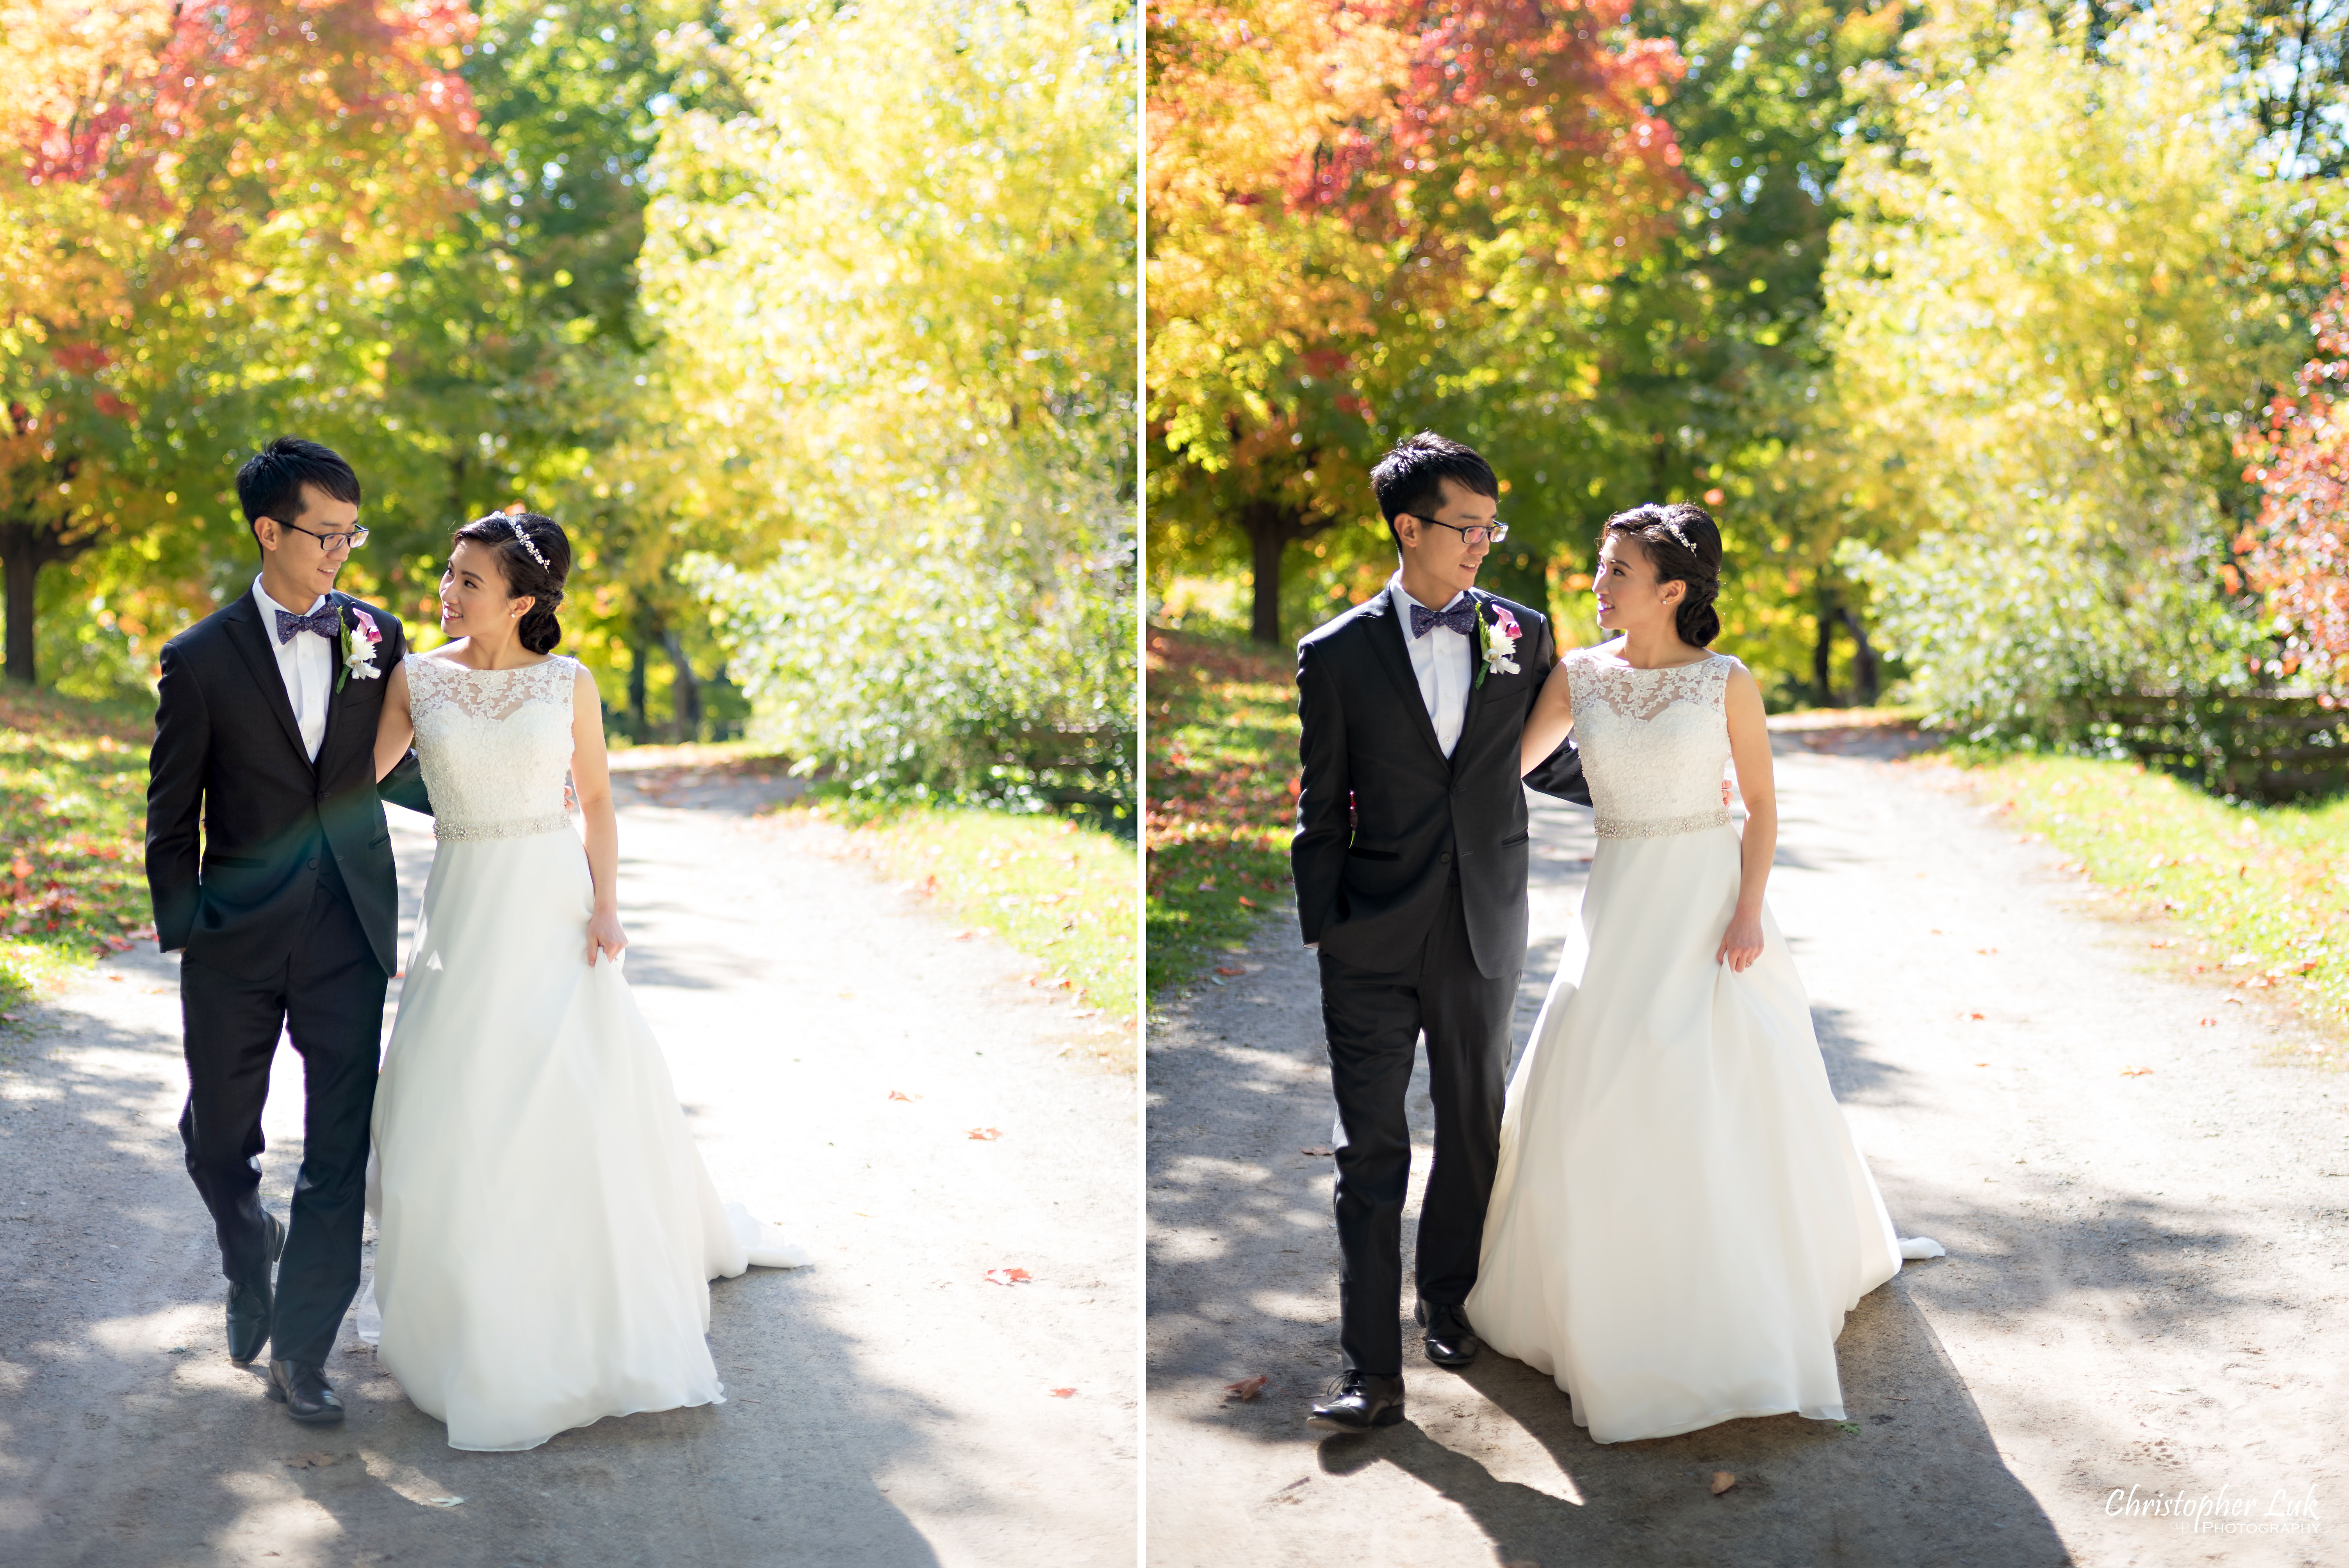 Ying Ying and Alvin's Fall / Autumn Wedding at Black Creek Pioneer Village and By Peter and Paul's Universal EventSpace